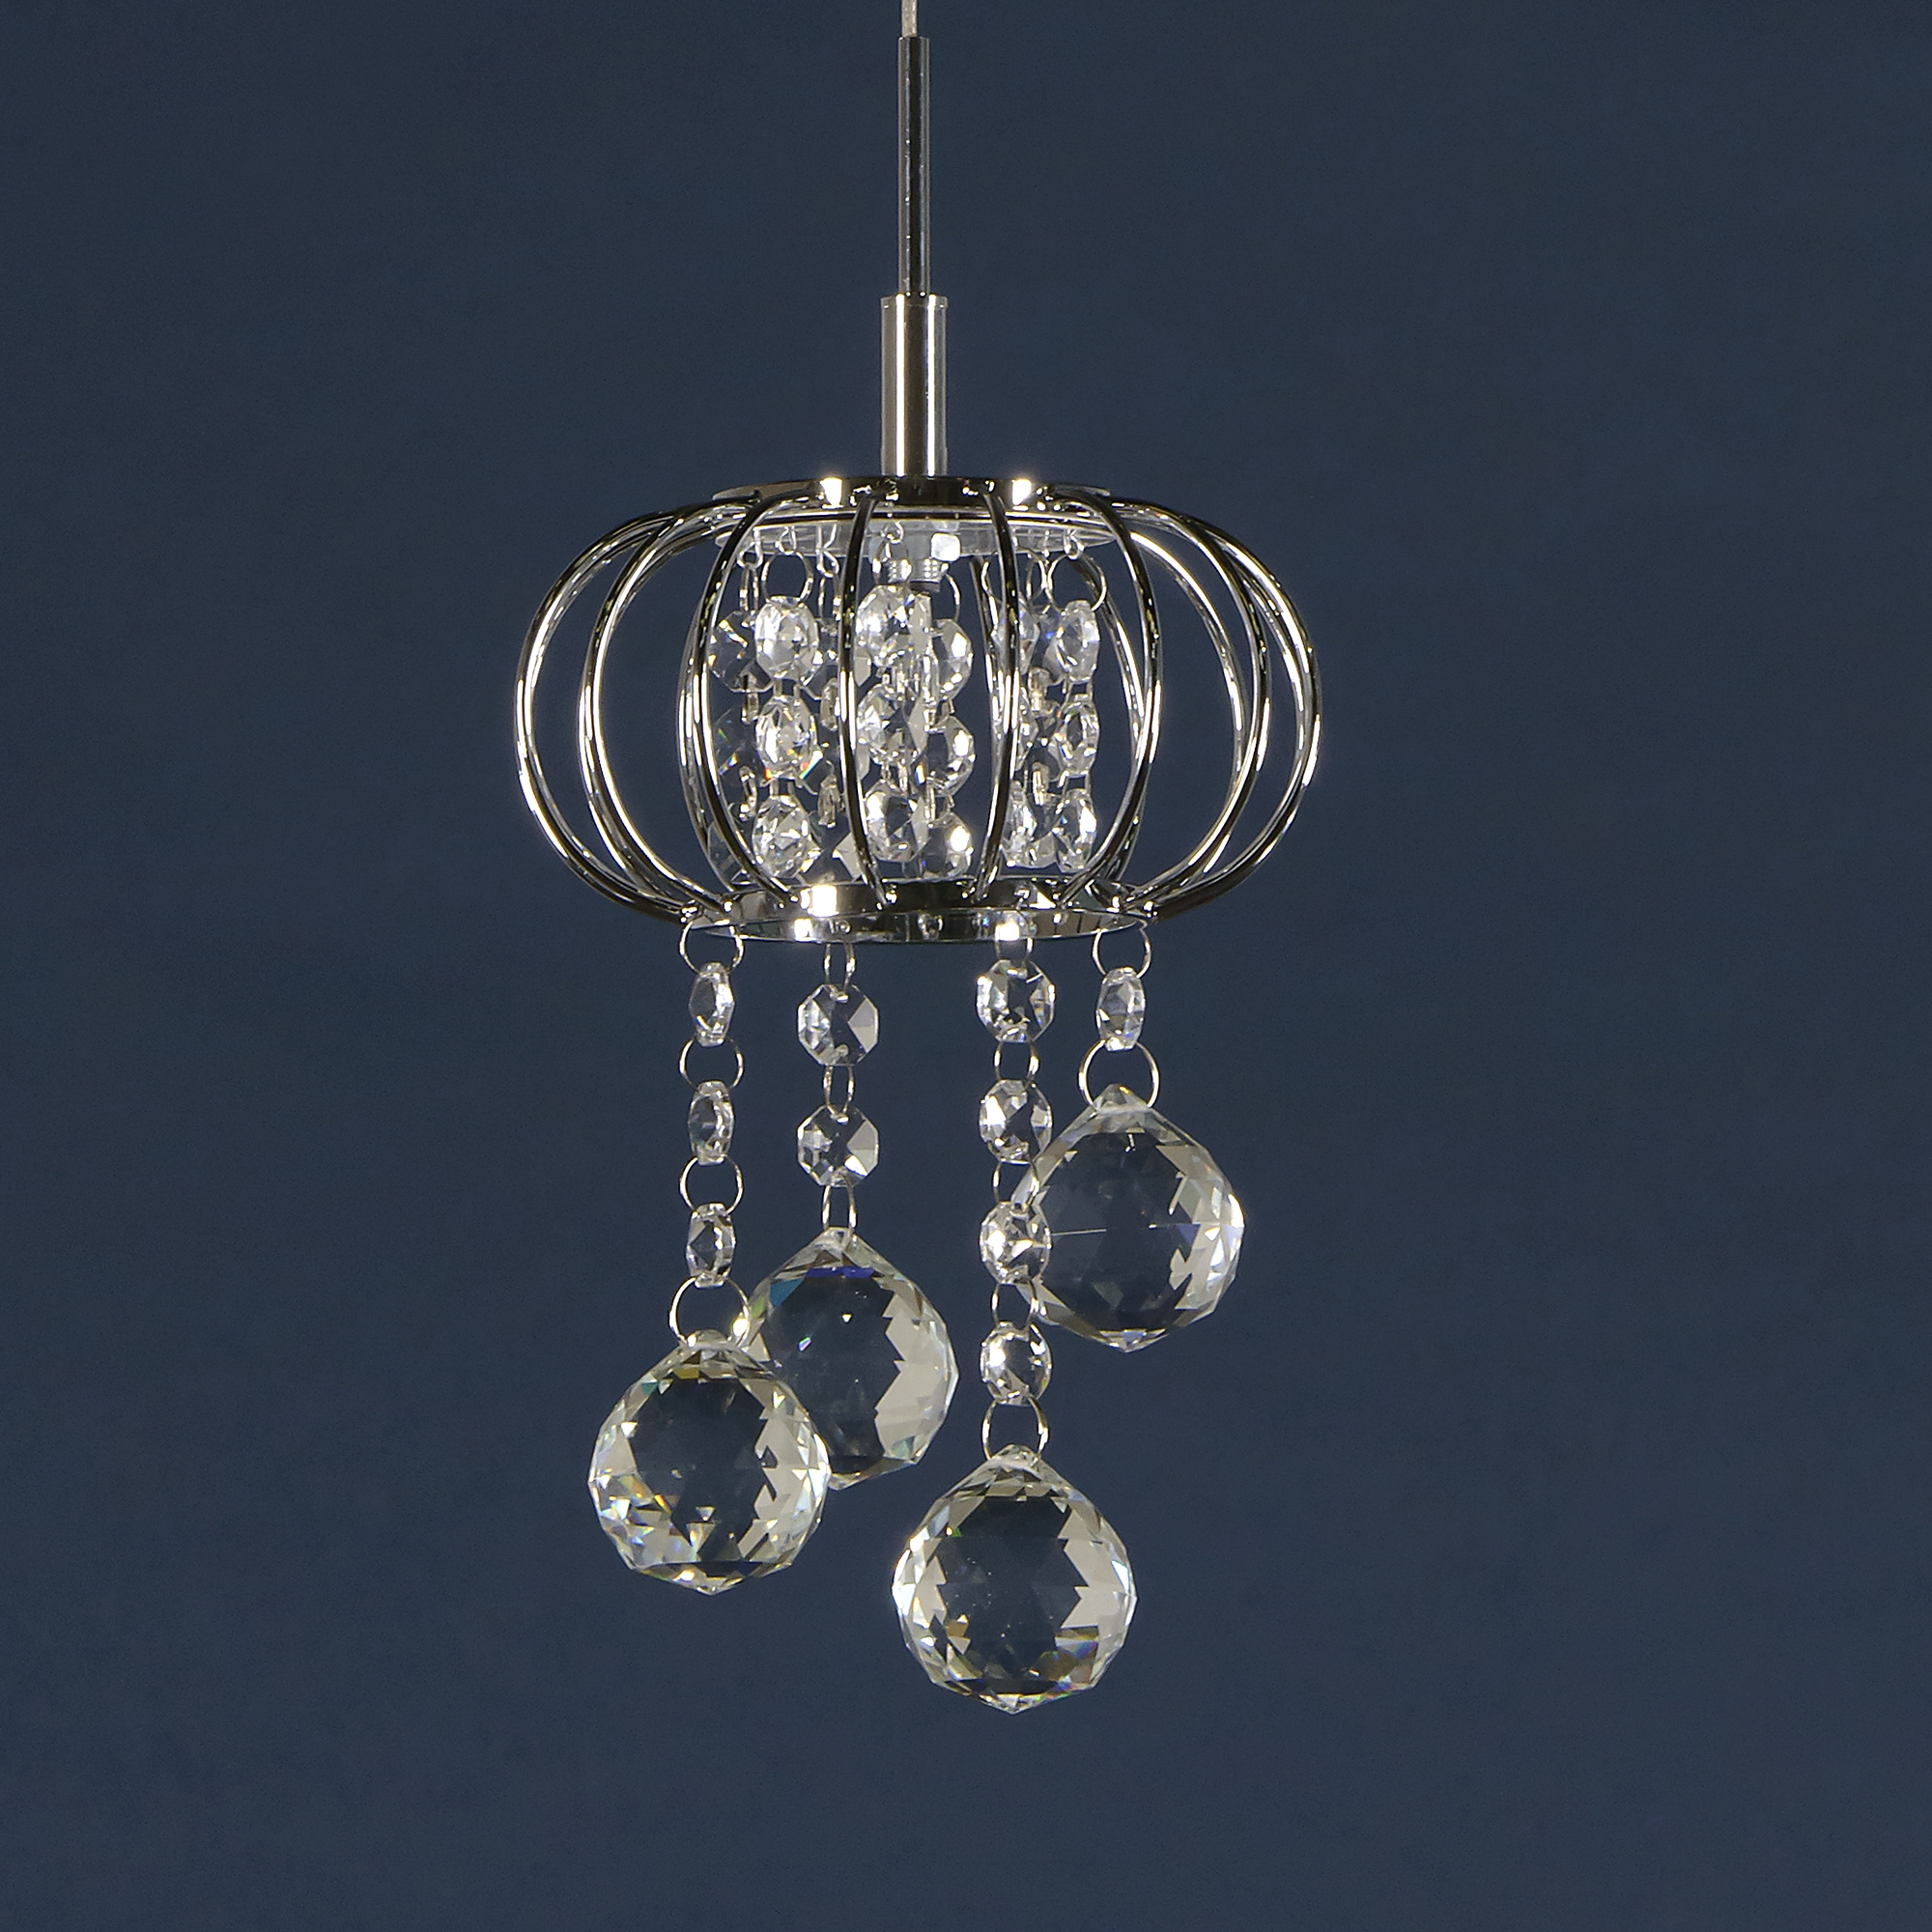 Crystal 1 Light Chandelier - Chrome and Clear